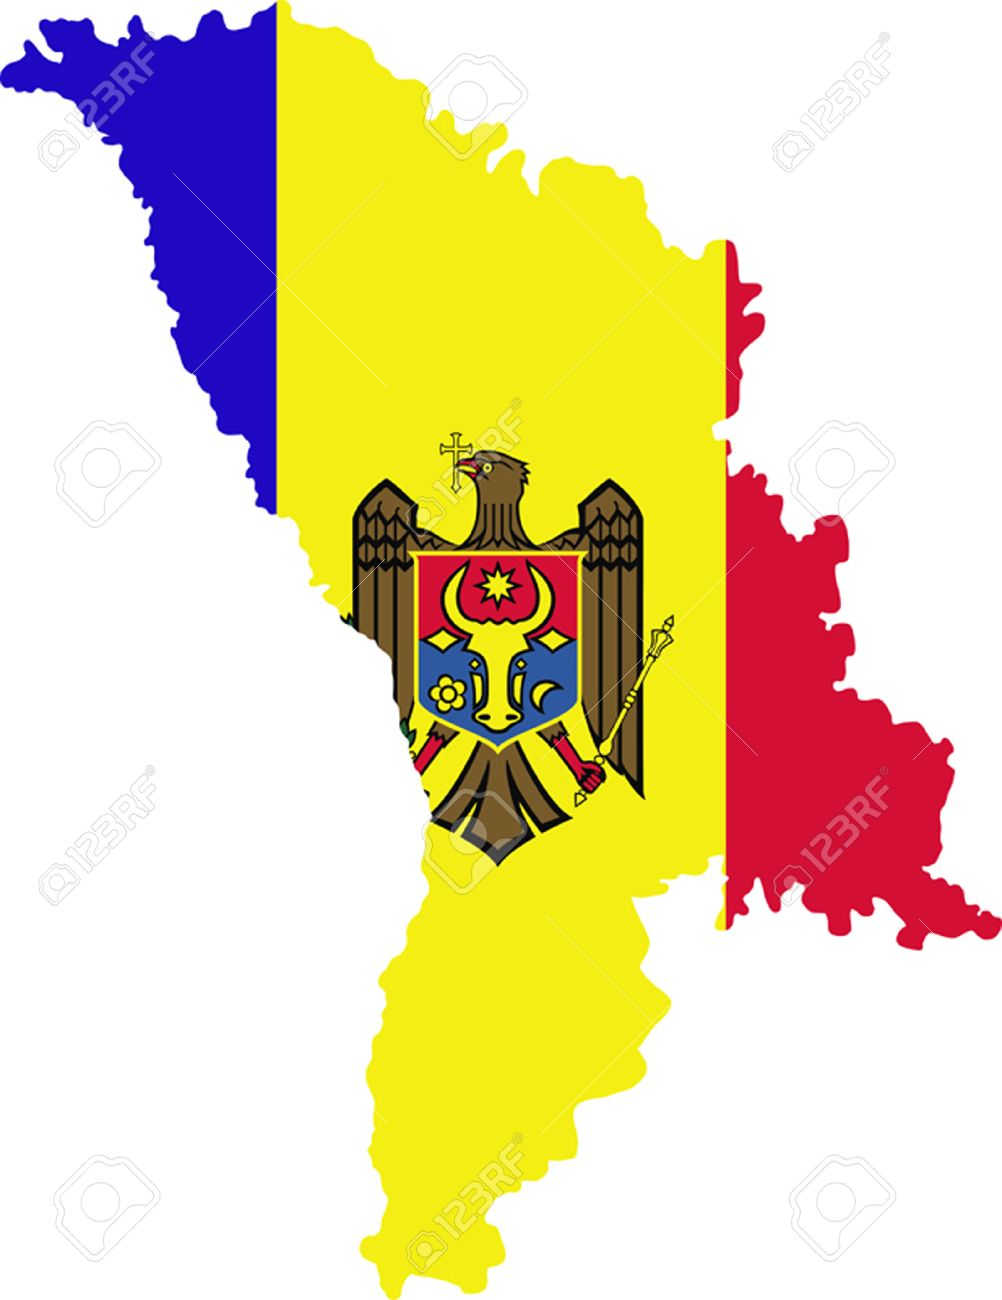 Map And Flag Of Moldova Royalty Free Cliparts Vectors And Stock - Moldova map vector